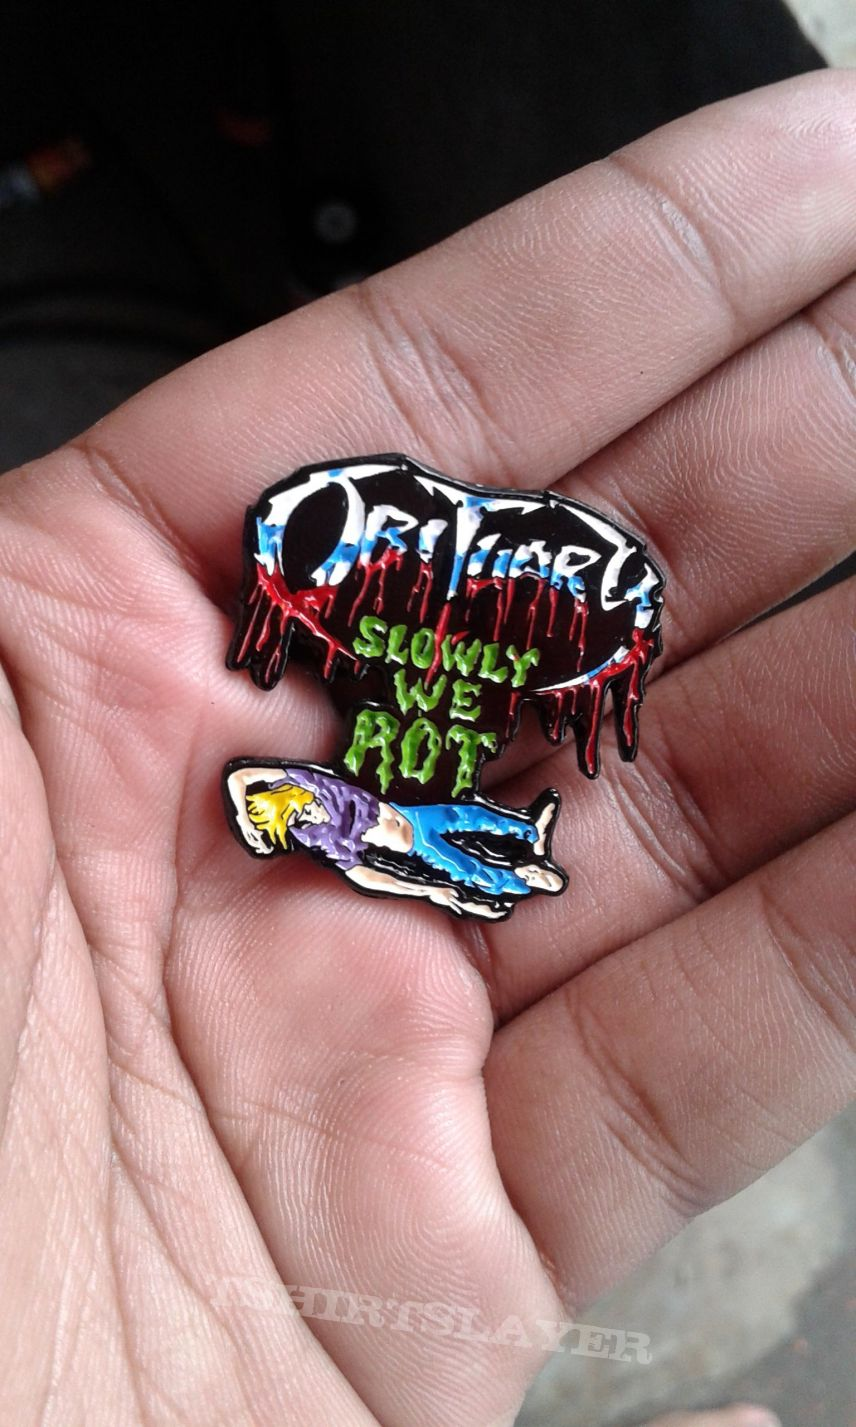 Obituary enamel pin